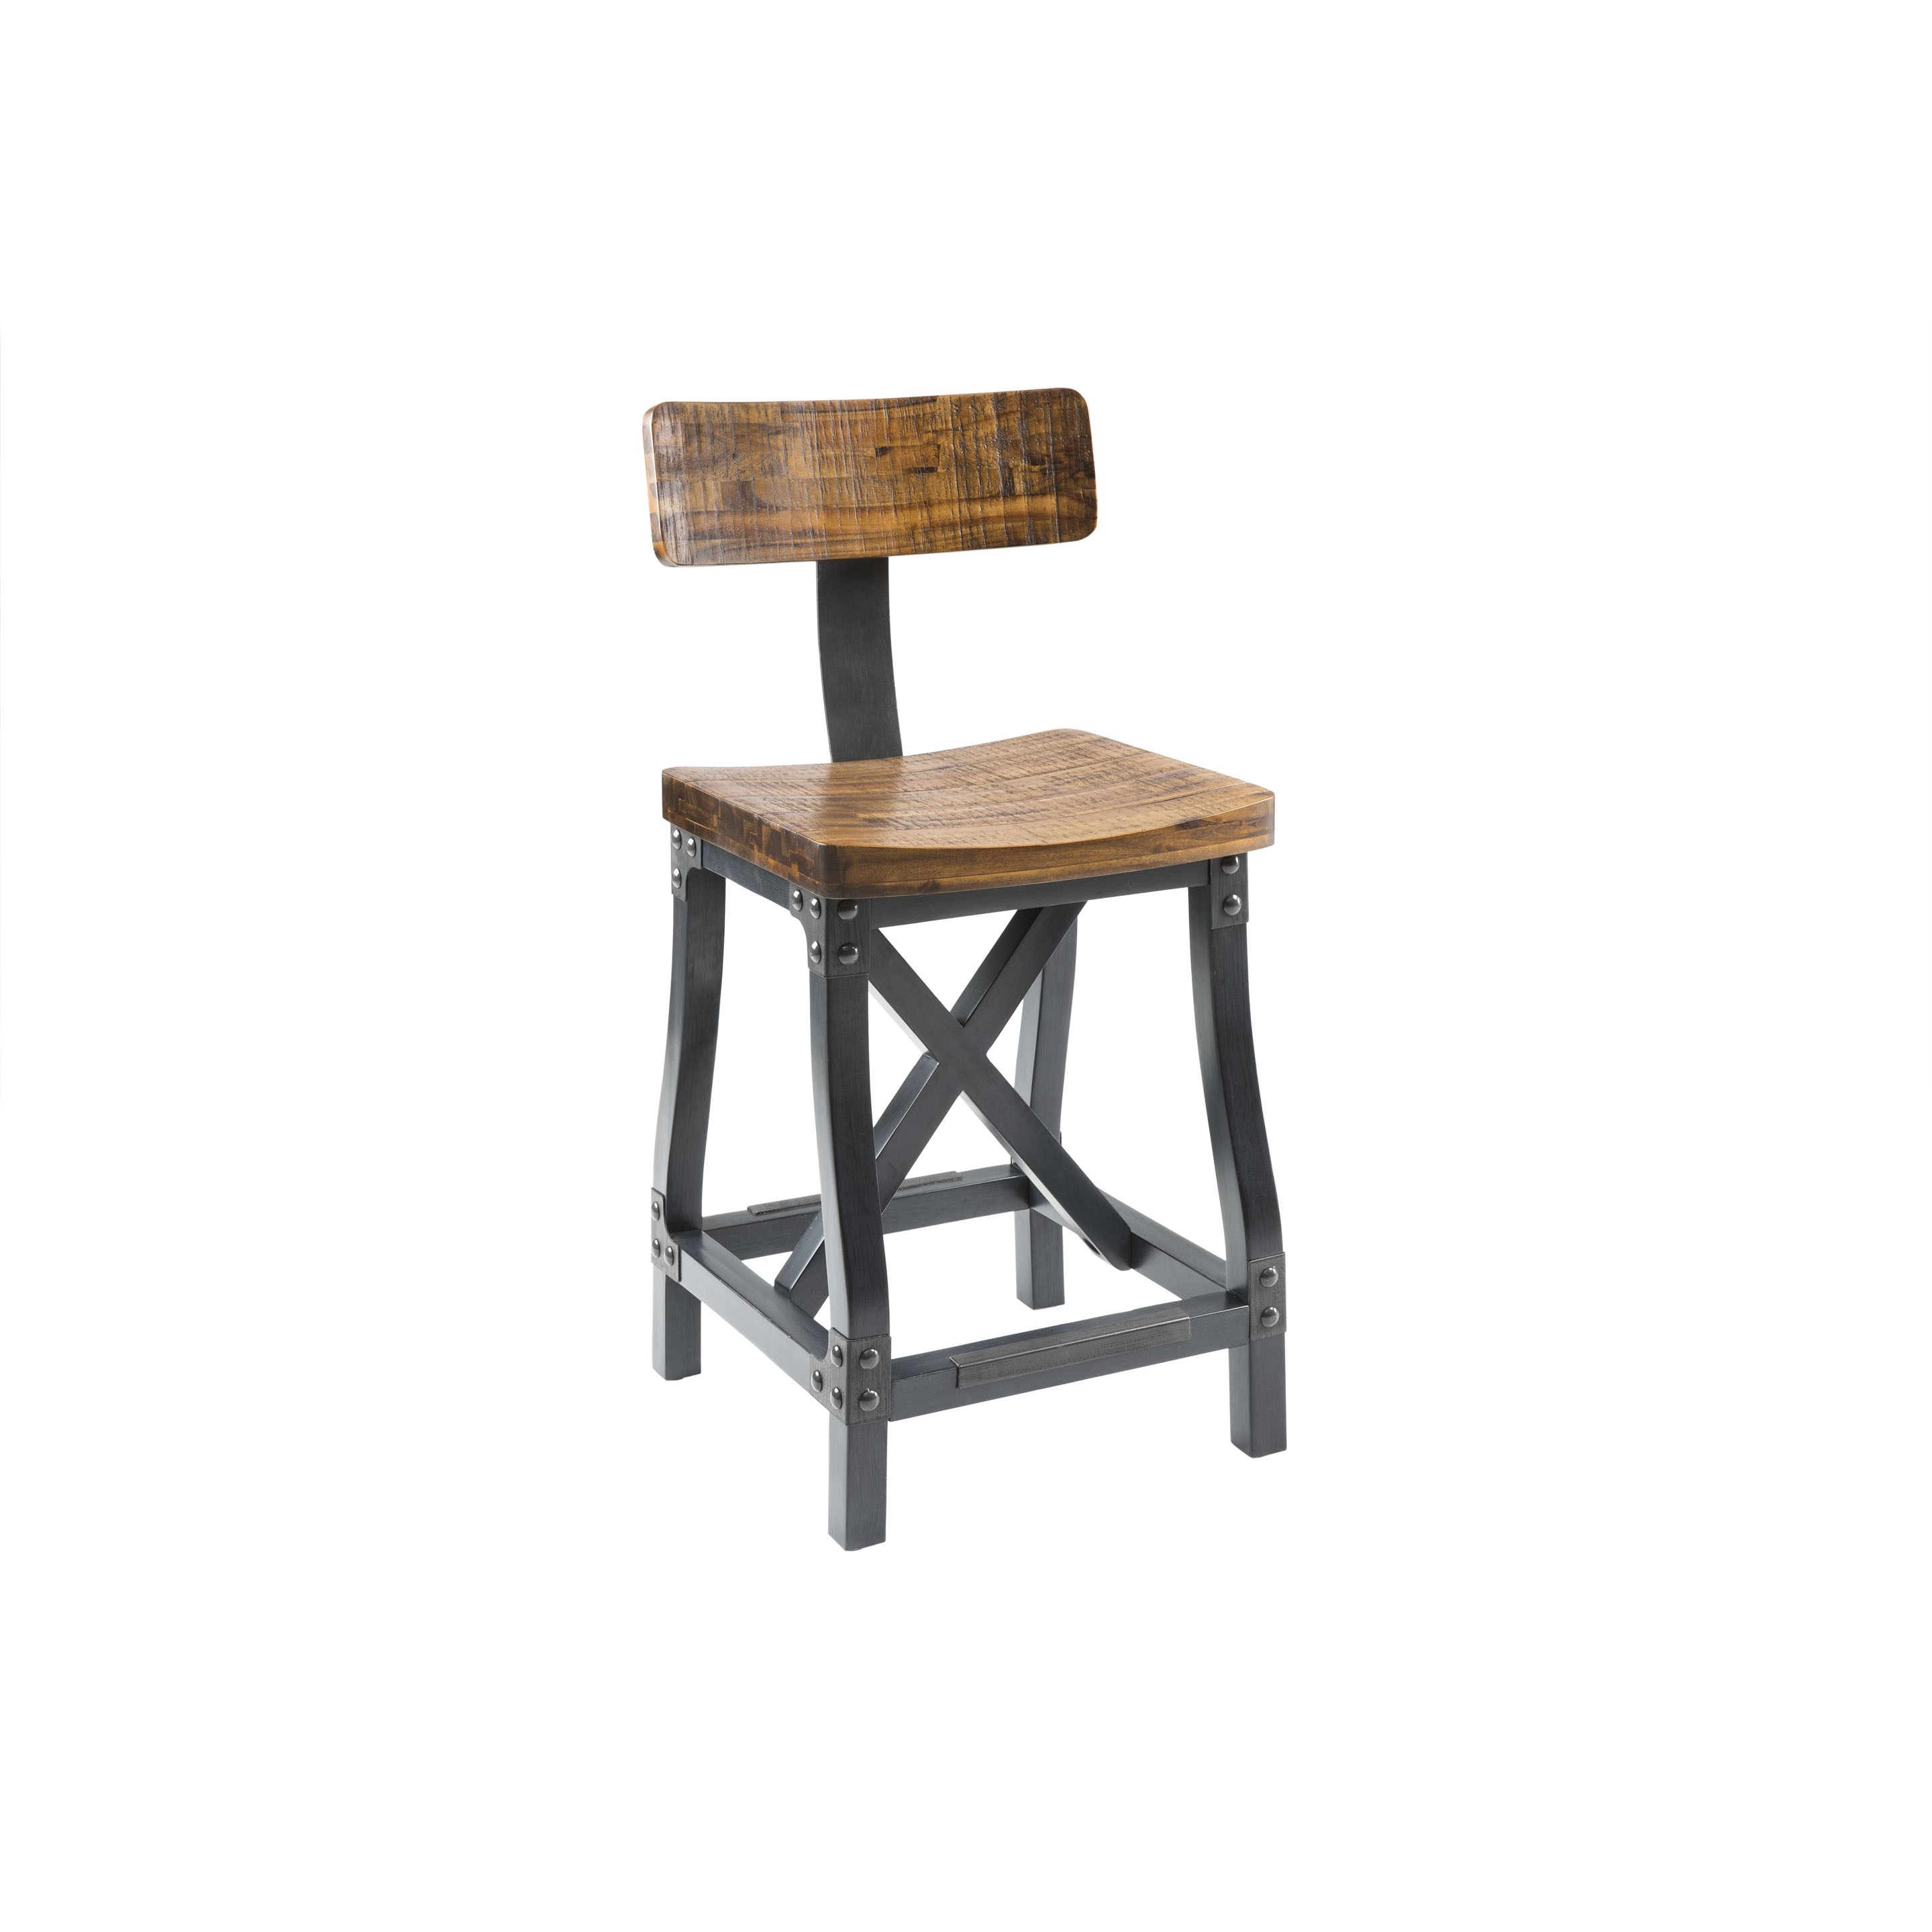 perfect with the kitchen to theydesign stool choose bar counter stools height how